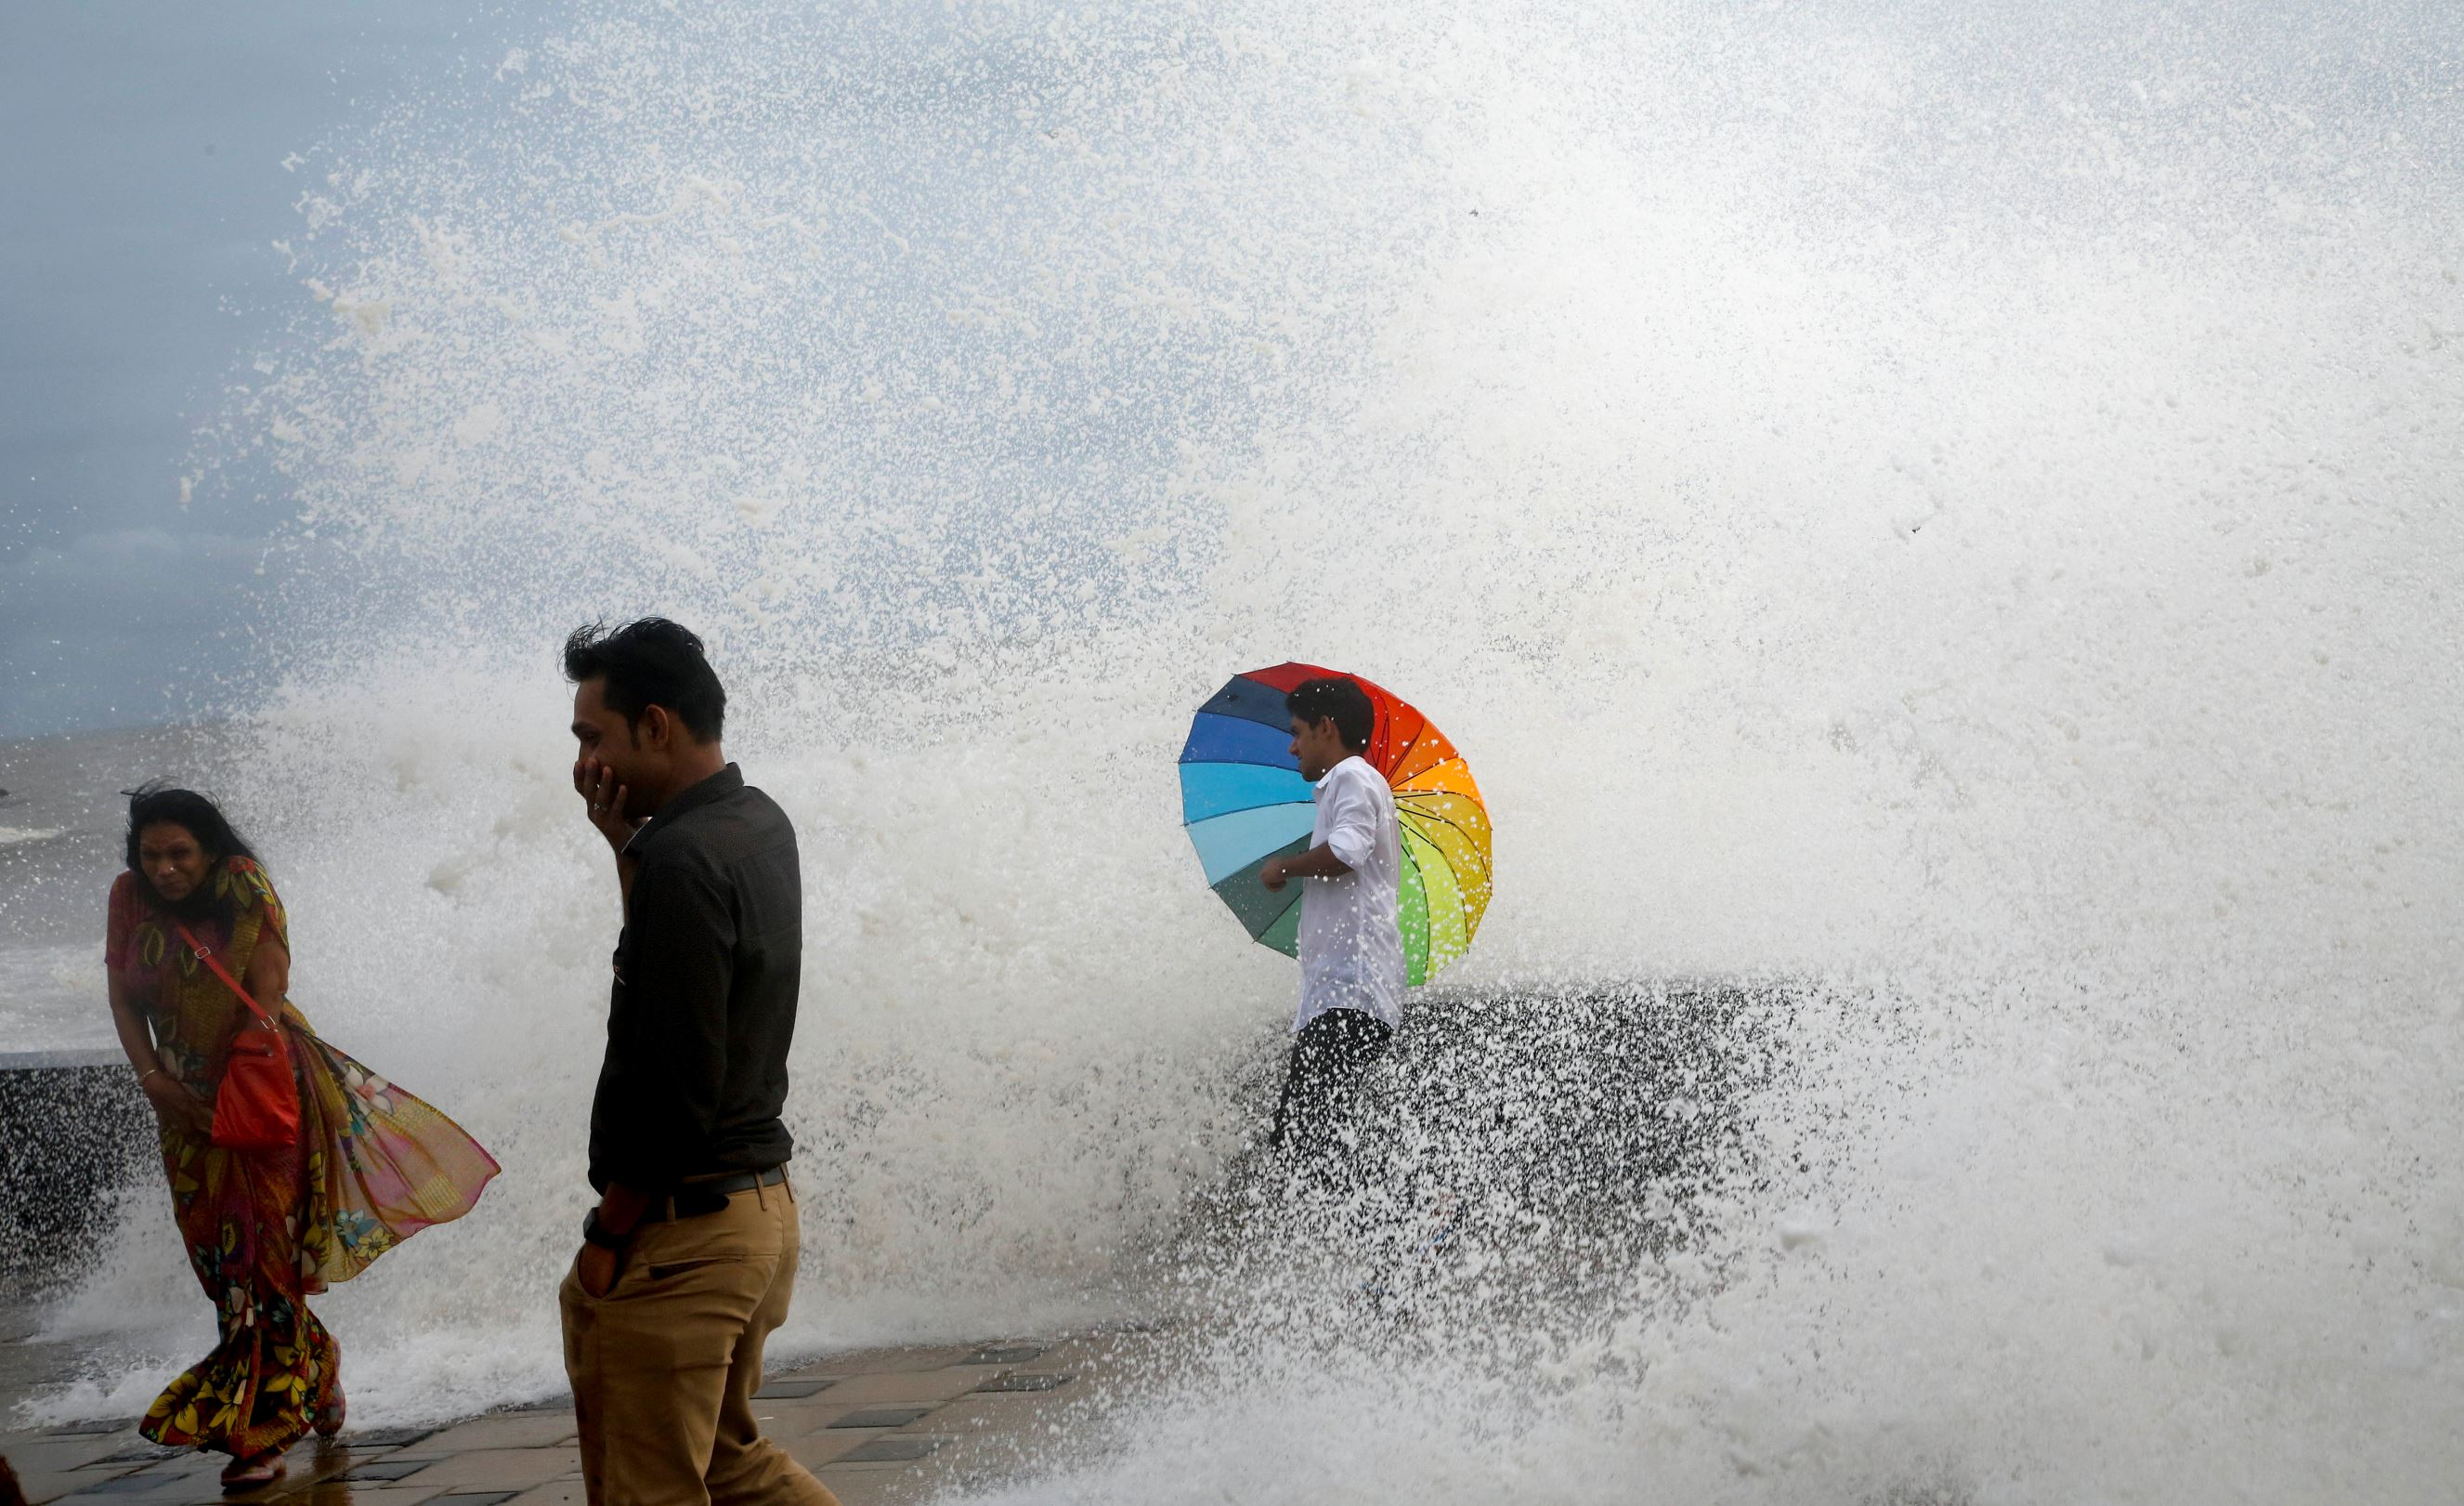 Слайд 60 из 86: An Indian man holding an umbrella stands on the Arabia Sea coast as he enjoys the high tide waves in Mumbai, India, Wednesday, June 29, 2016. Monsoon rains have picked up pace in the city after a slow start, bringing welcome relief after a long drought.